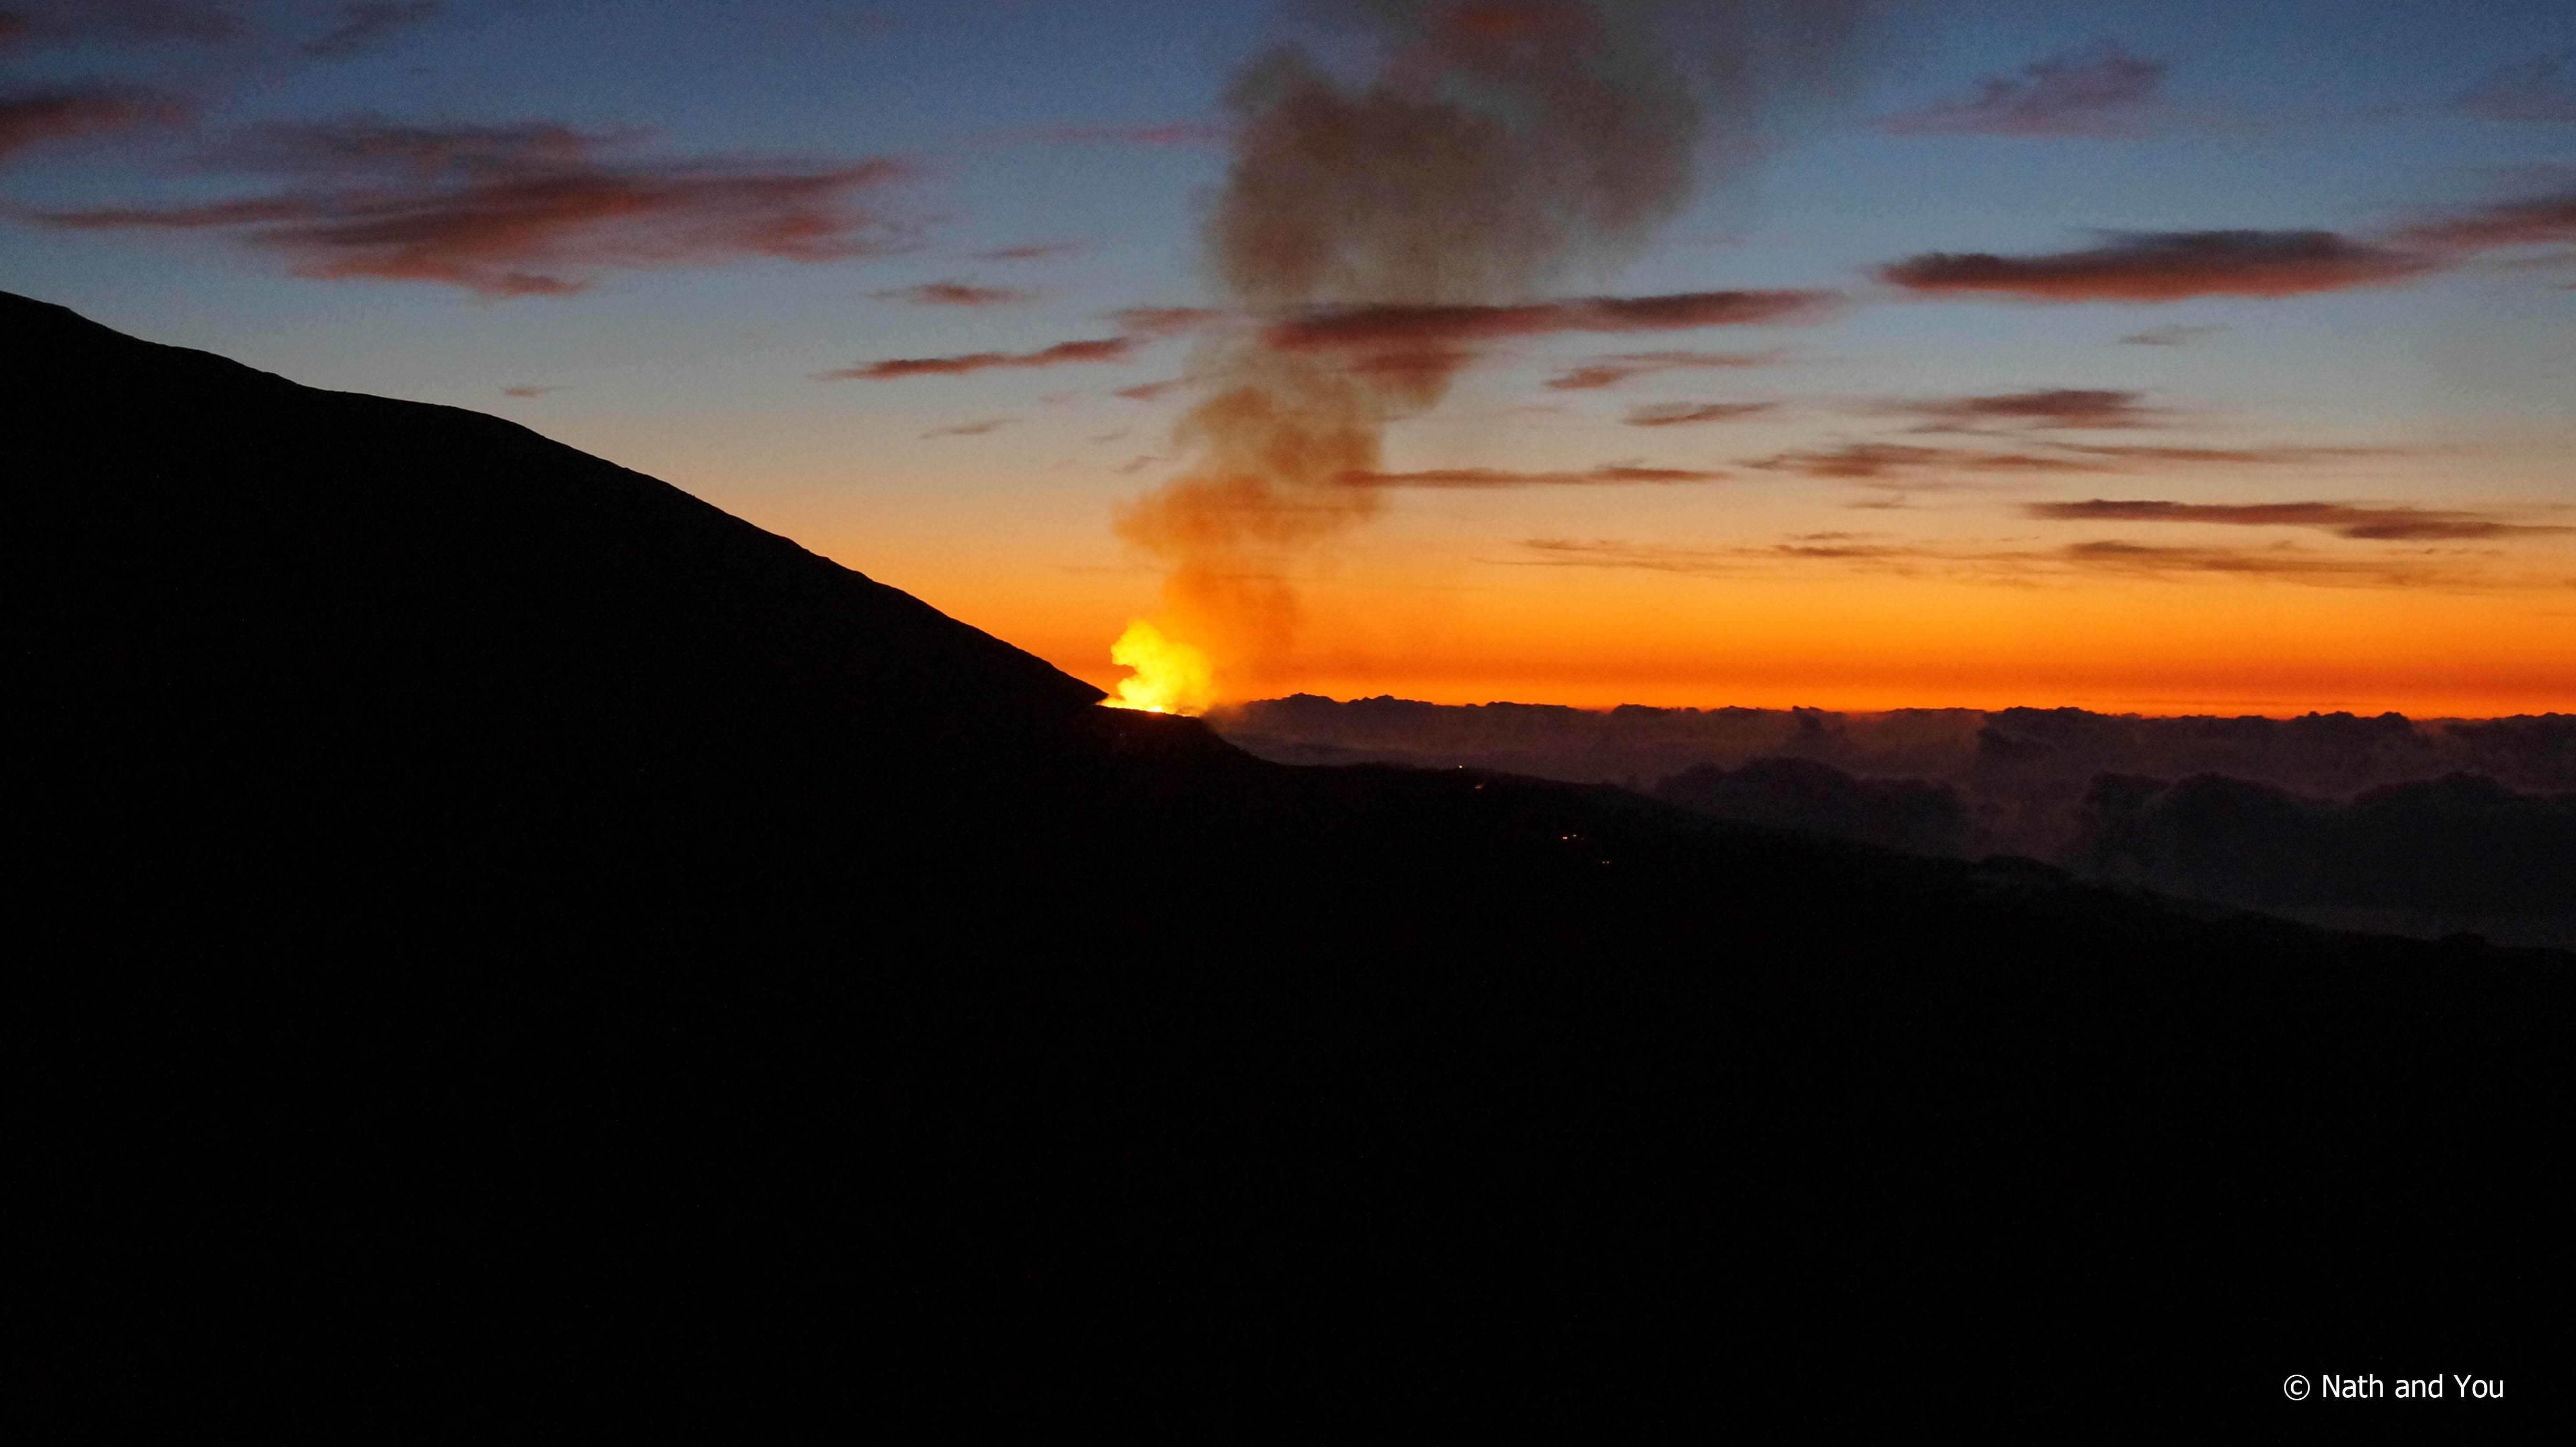 Piton-Fournaise-eruption-lever-soleil-Reunion-Nath-and-You